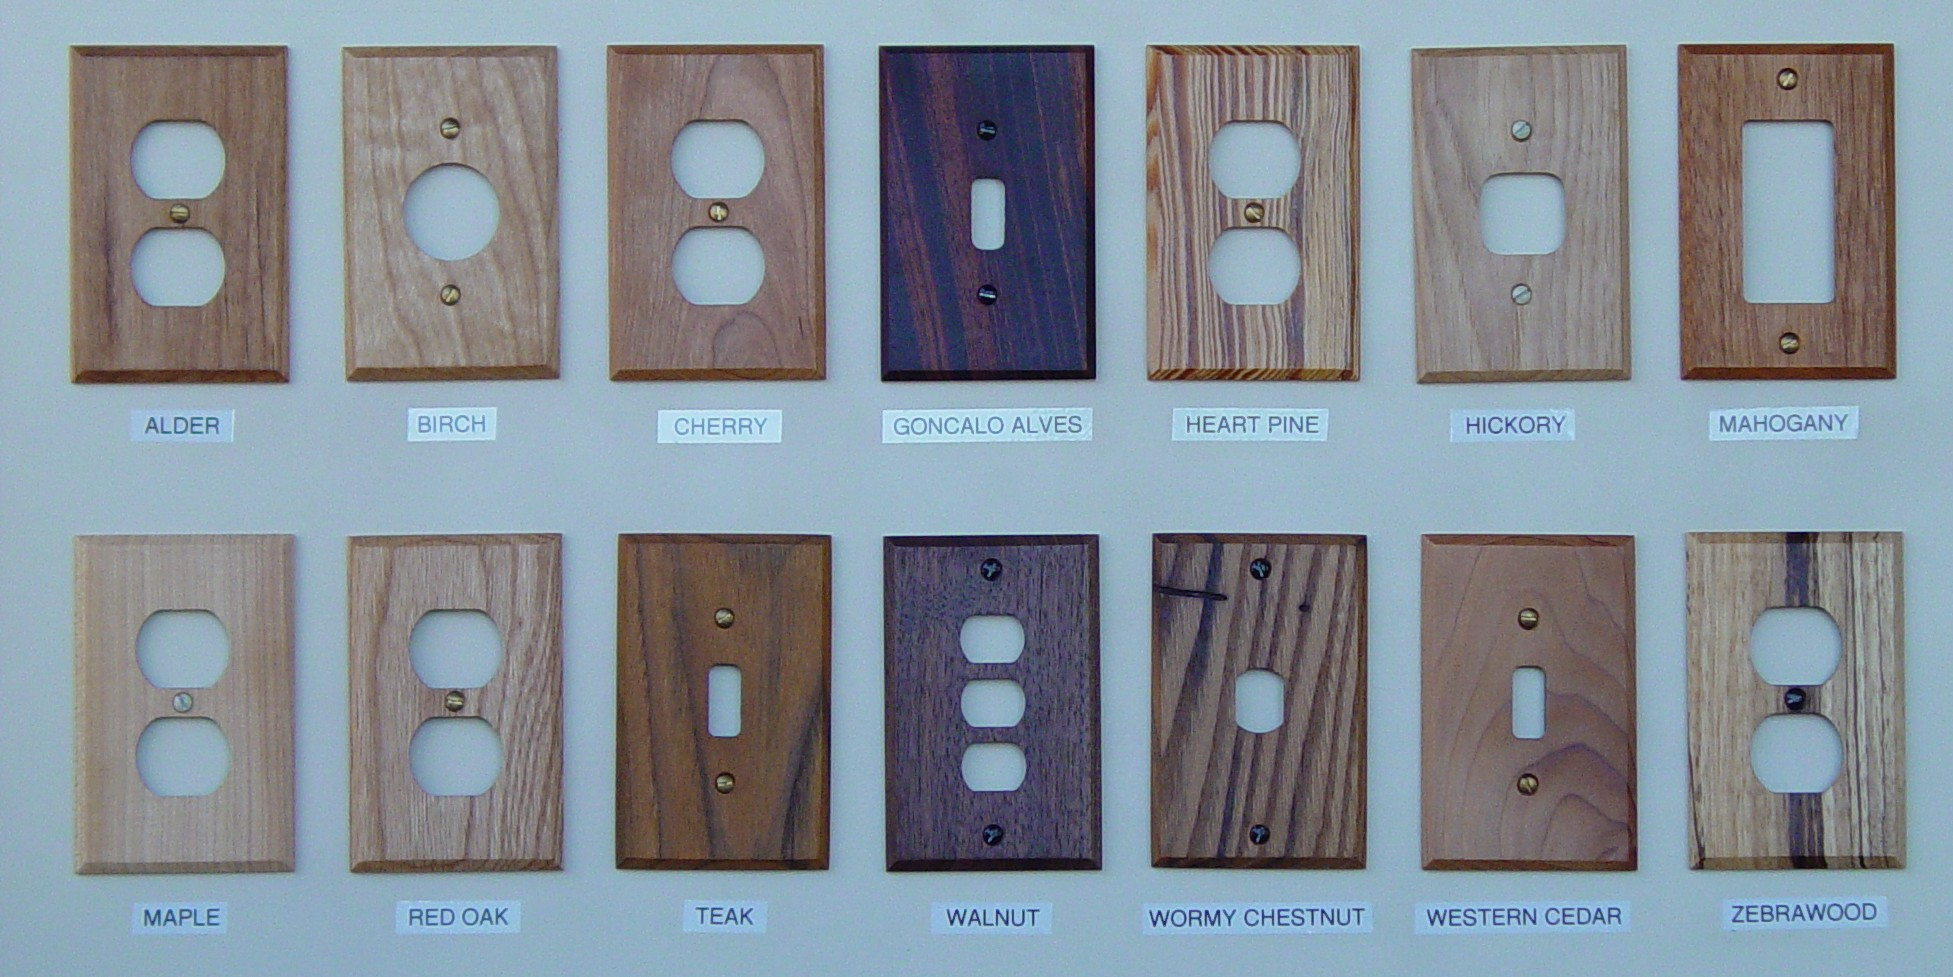 We Sell Wood Switch Plates, Wood Wall Plates And Log Wood